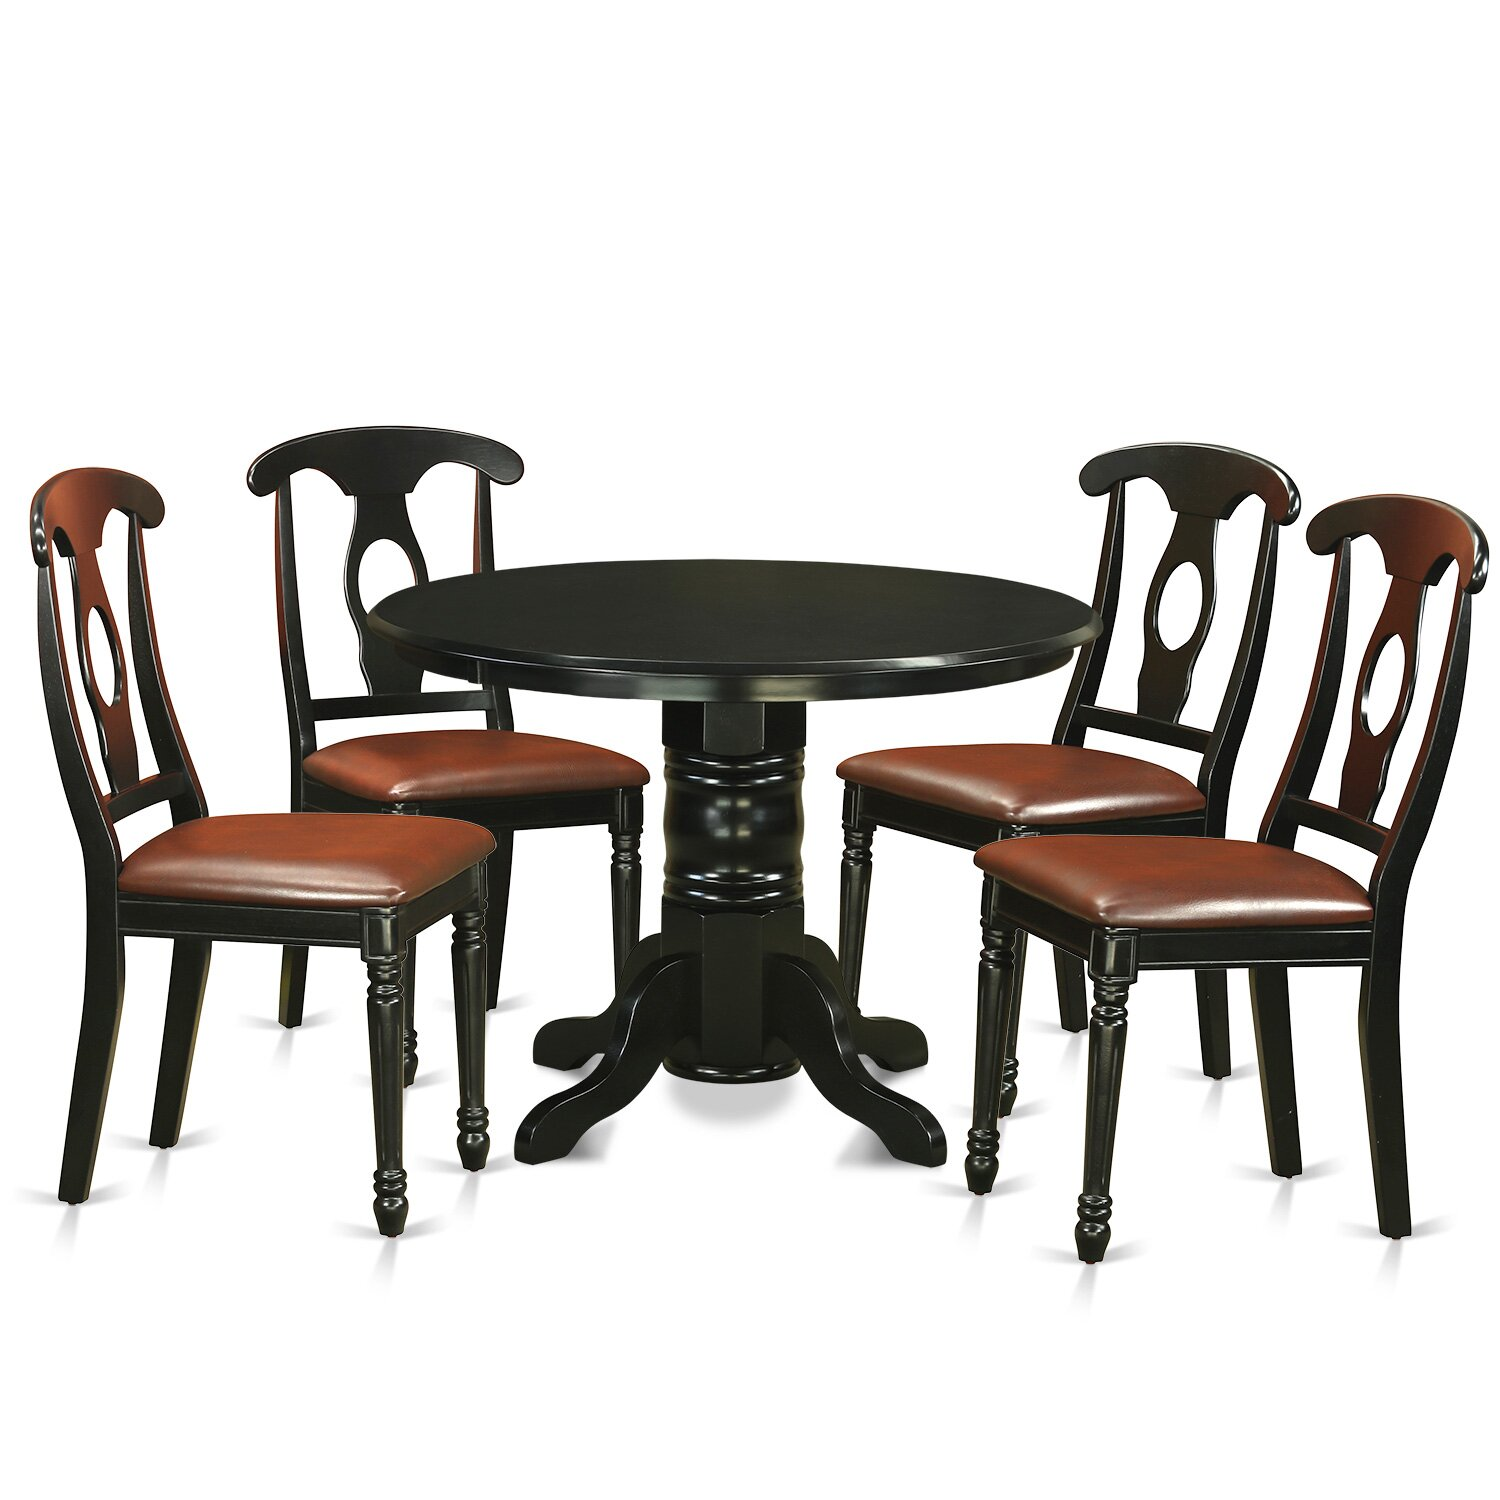 East west shelton 5 piece dining set reviews wayfair for Kitchen table and stools set